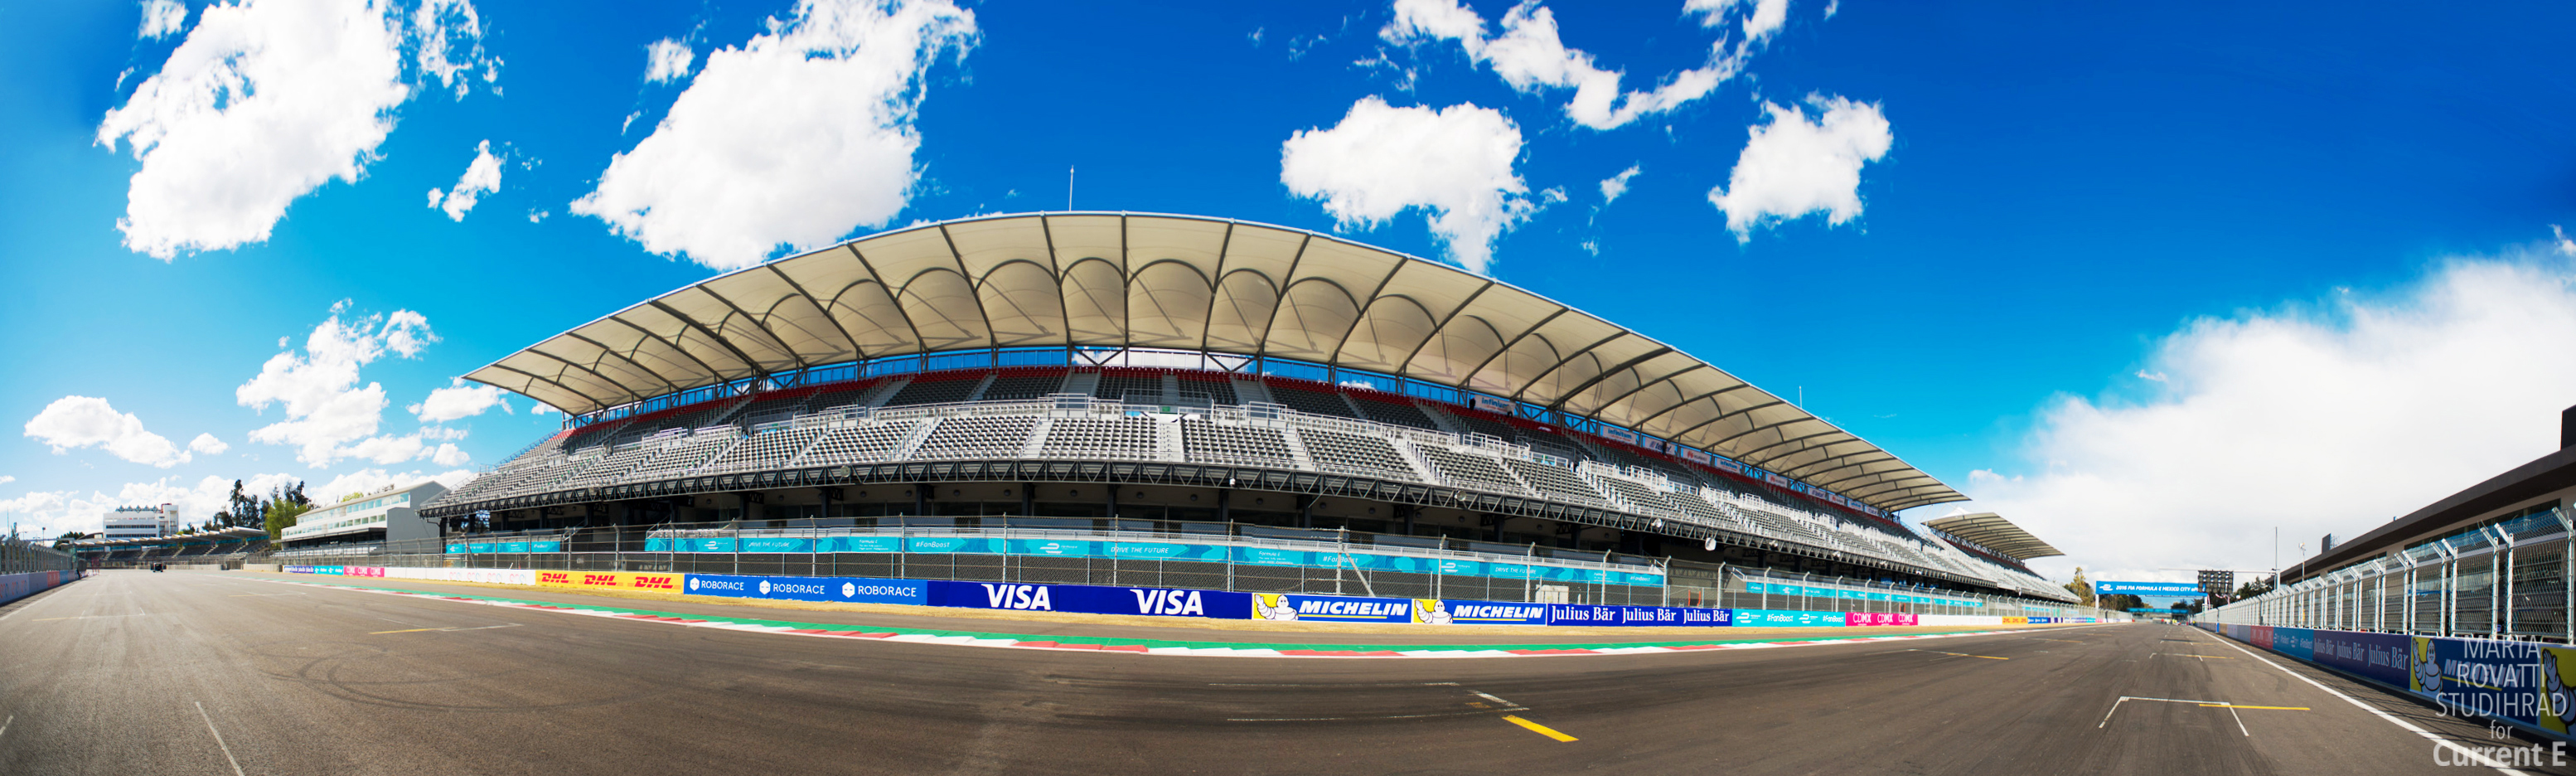 Current-E-Formula-E-Mexico-City-2016-season-2-Marta-Rovatti-Studihrad-pano-1